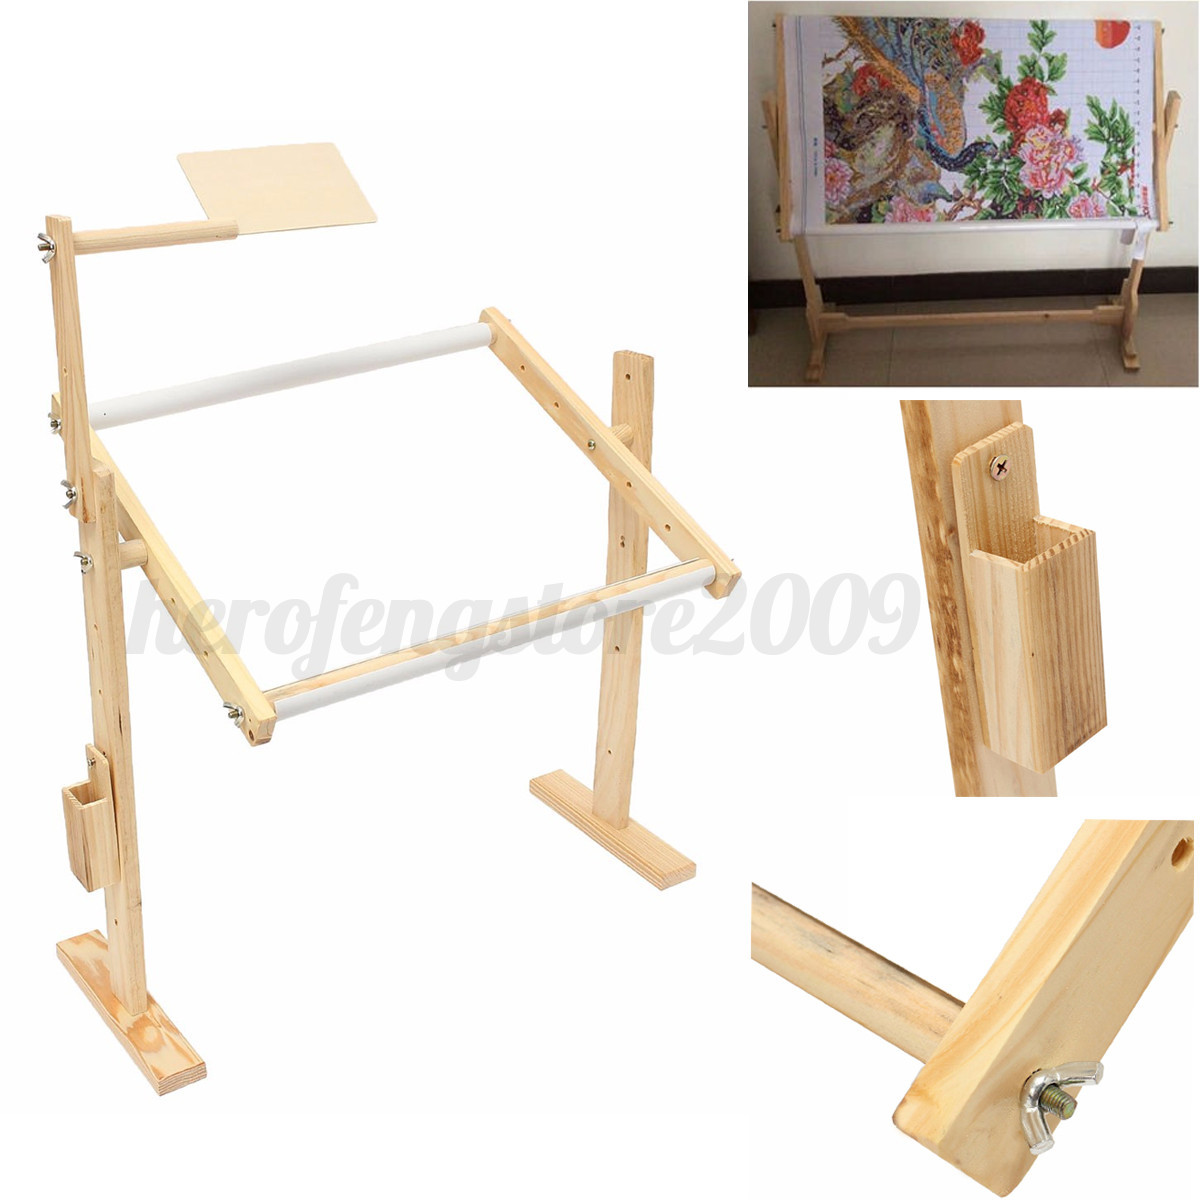 Marvelous photograph of Details about Wooden Floor Stand Holder Embroidery Frames Cross Stitch  with #9C6E2F color and 1200x1200 pixels